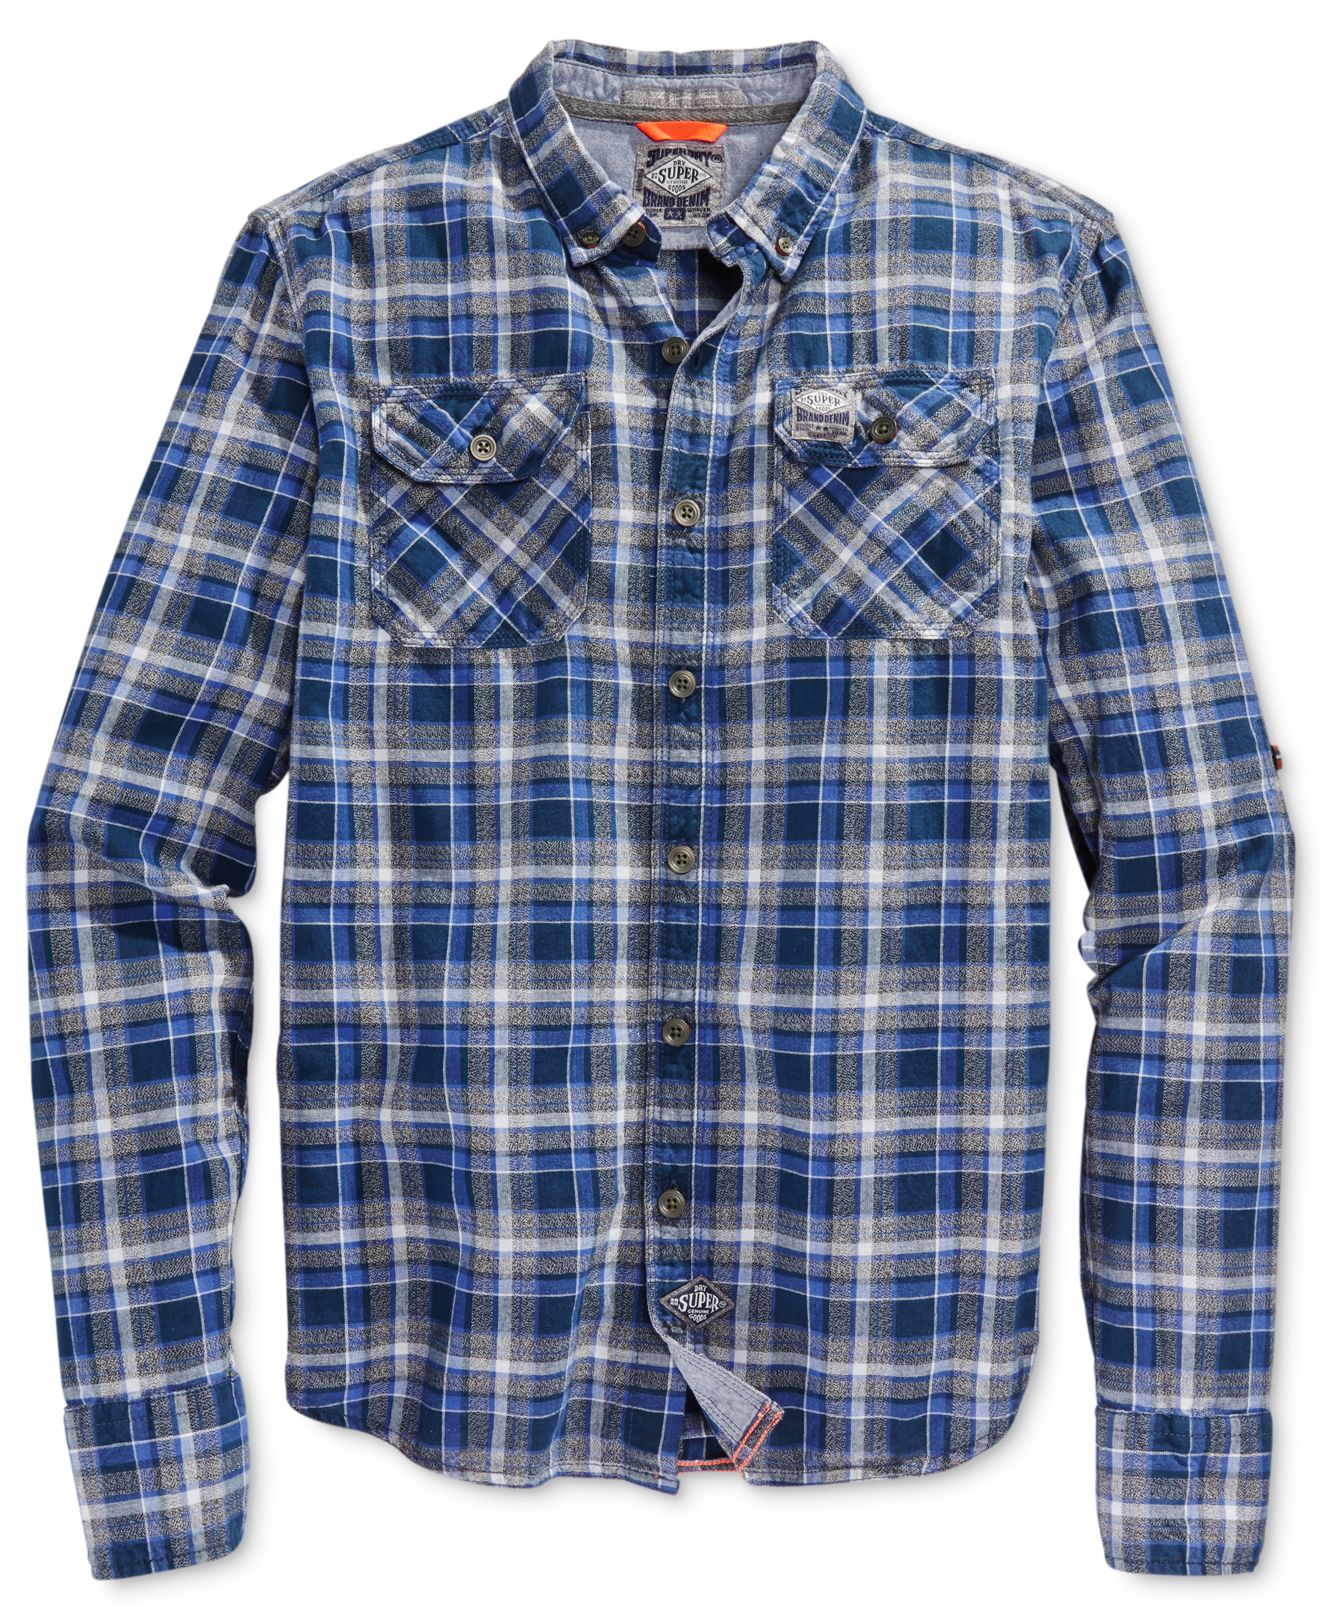 Grindlesawn Long Sleeve Shirt Superdry